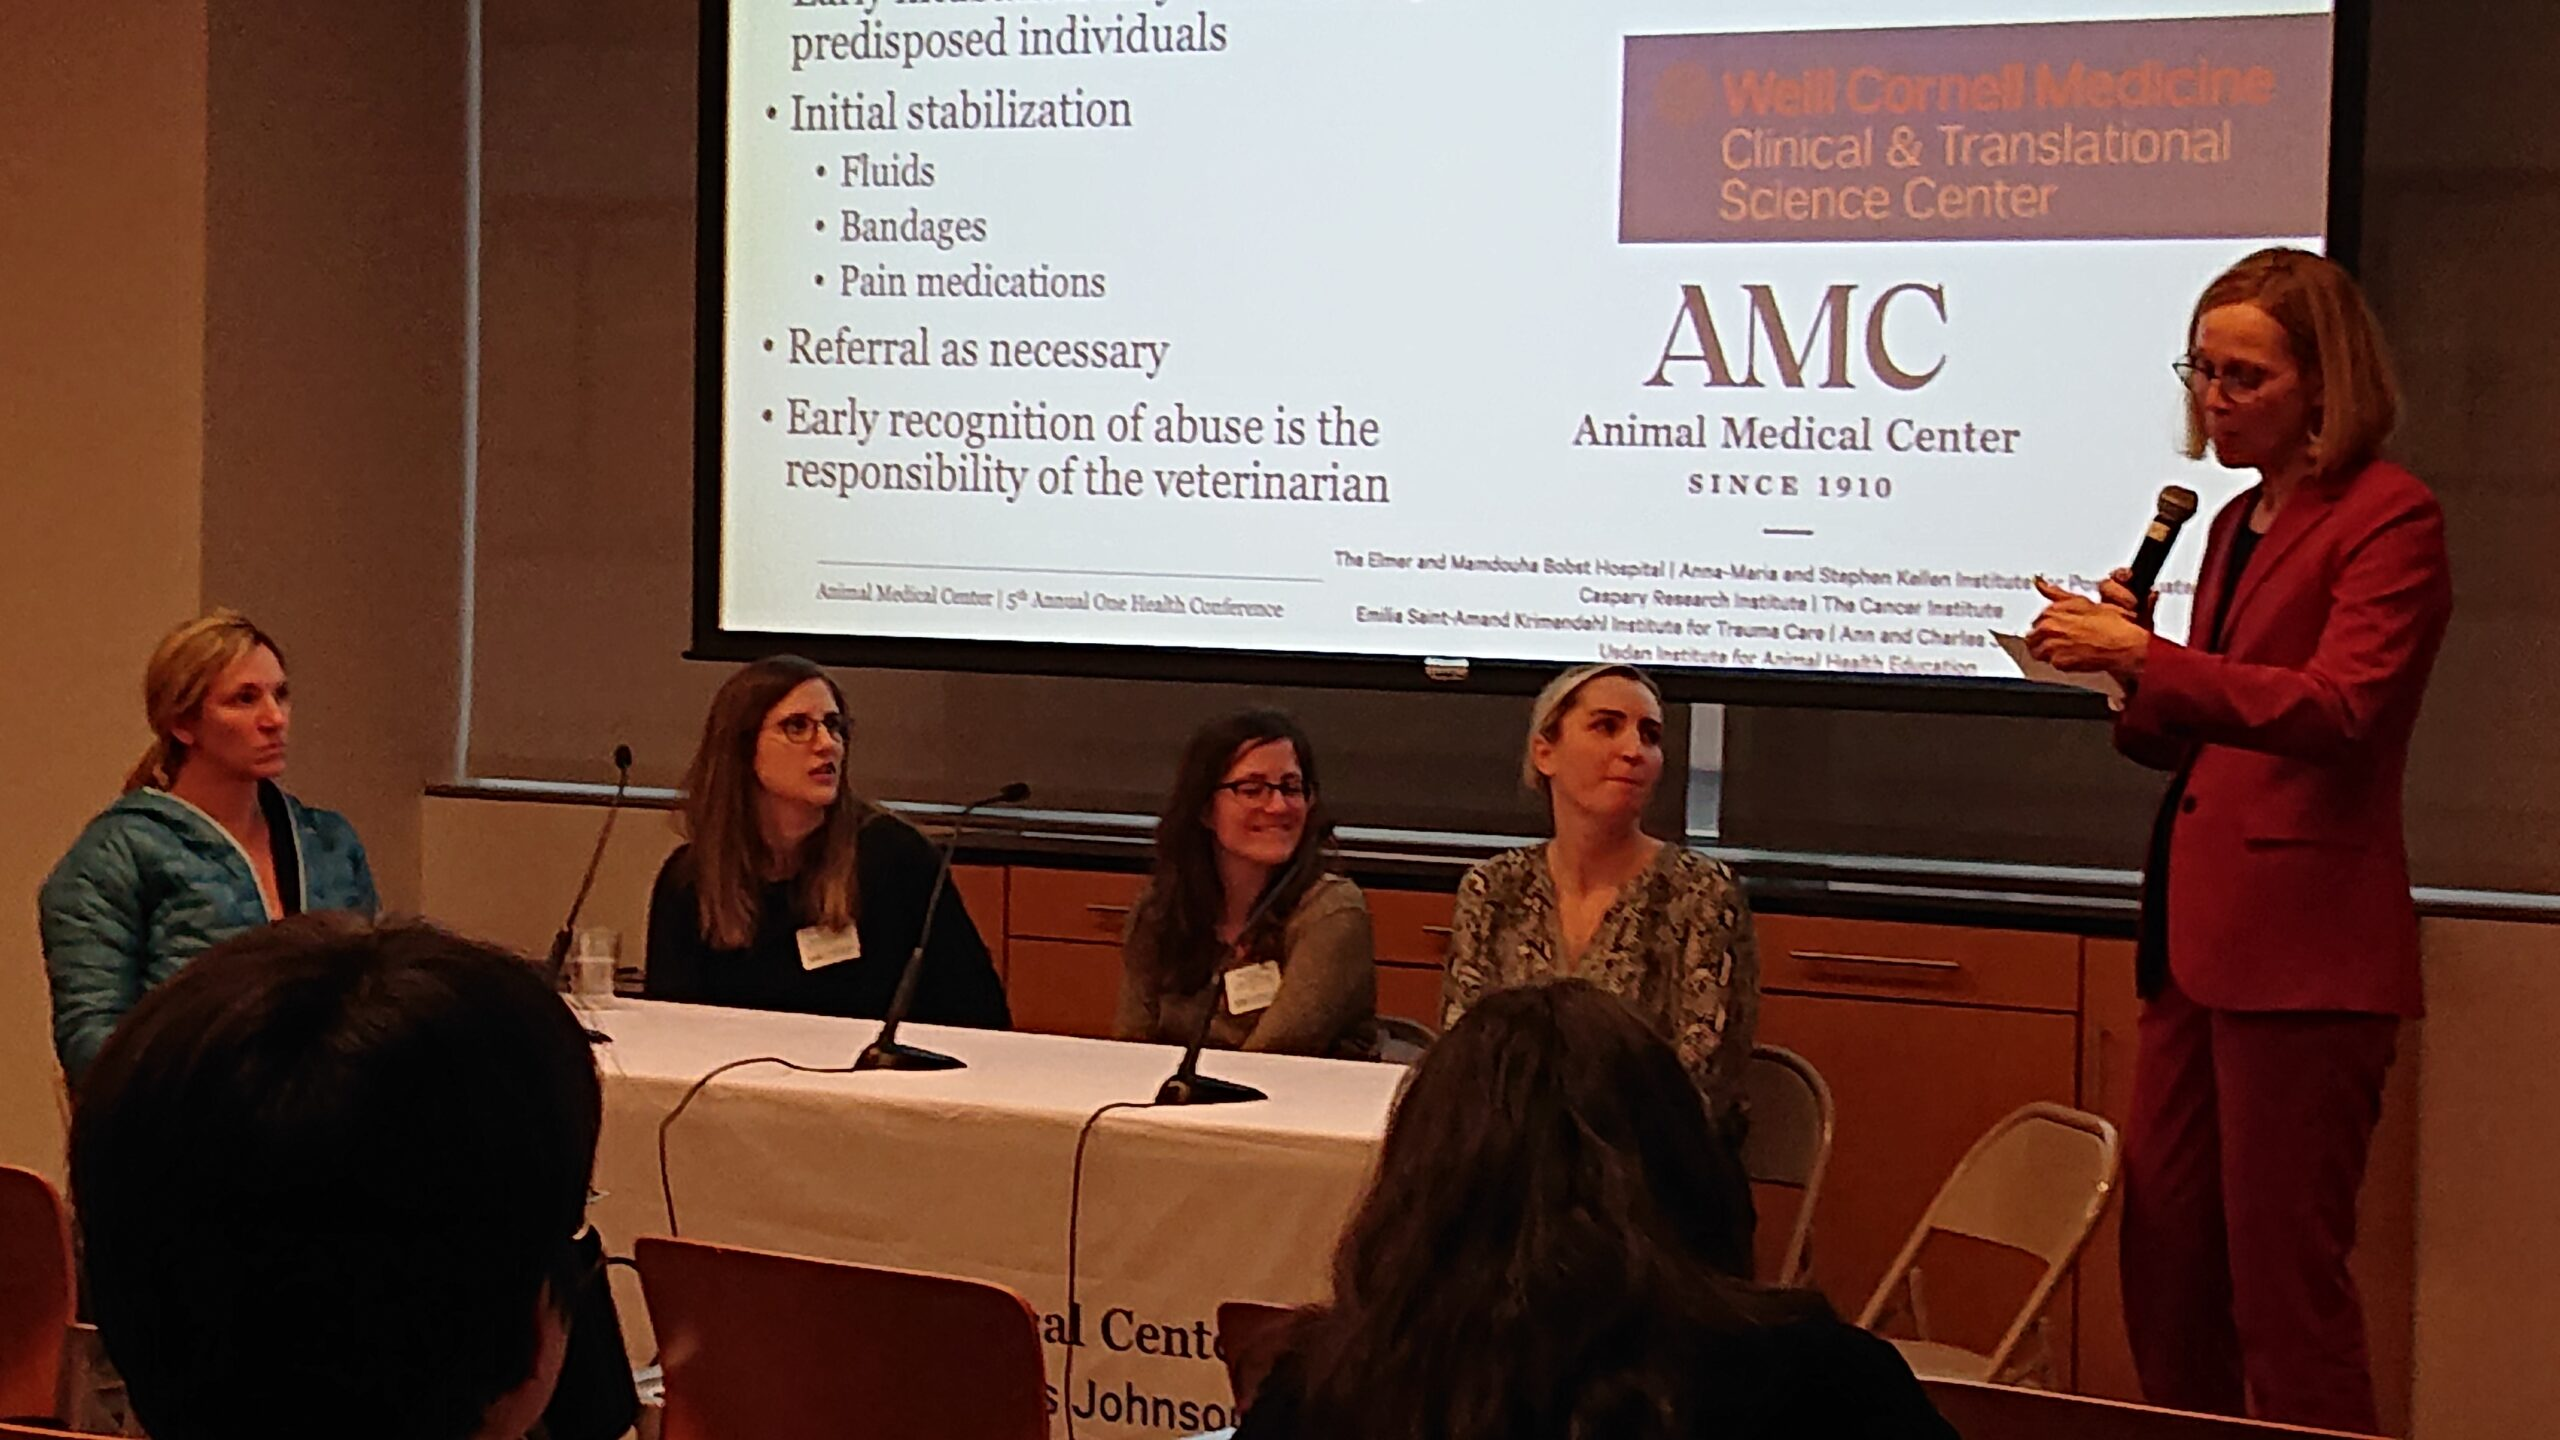 Dr. Bazzle, Dr. Keyserling, Dr. Cazzoli, and Dr. Zollo sitting at table for panel with Dr. Quesenberry as the moderator